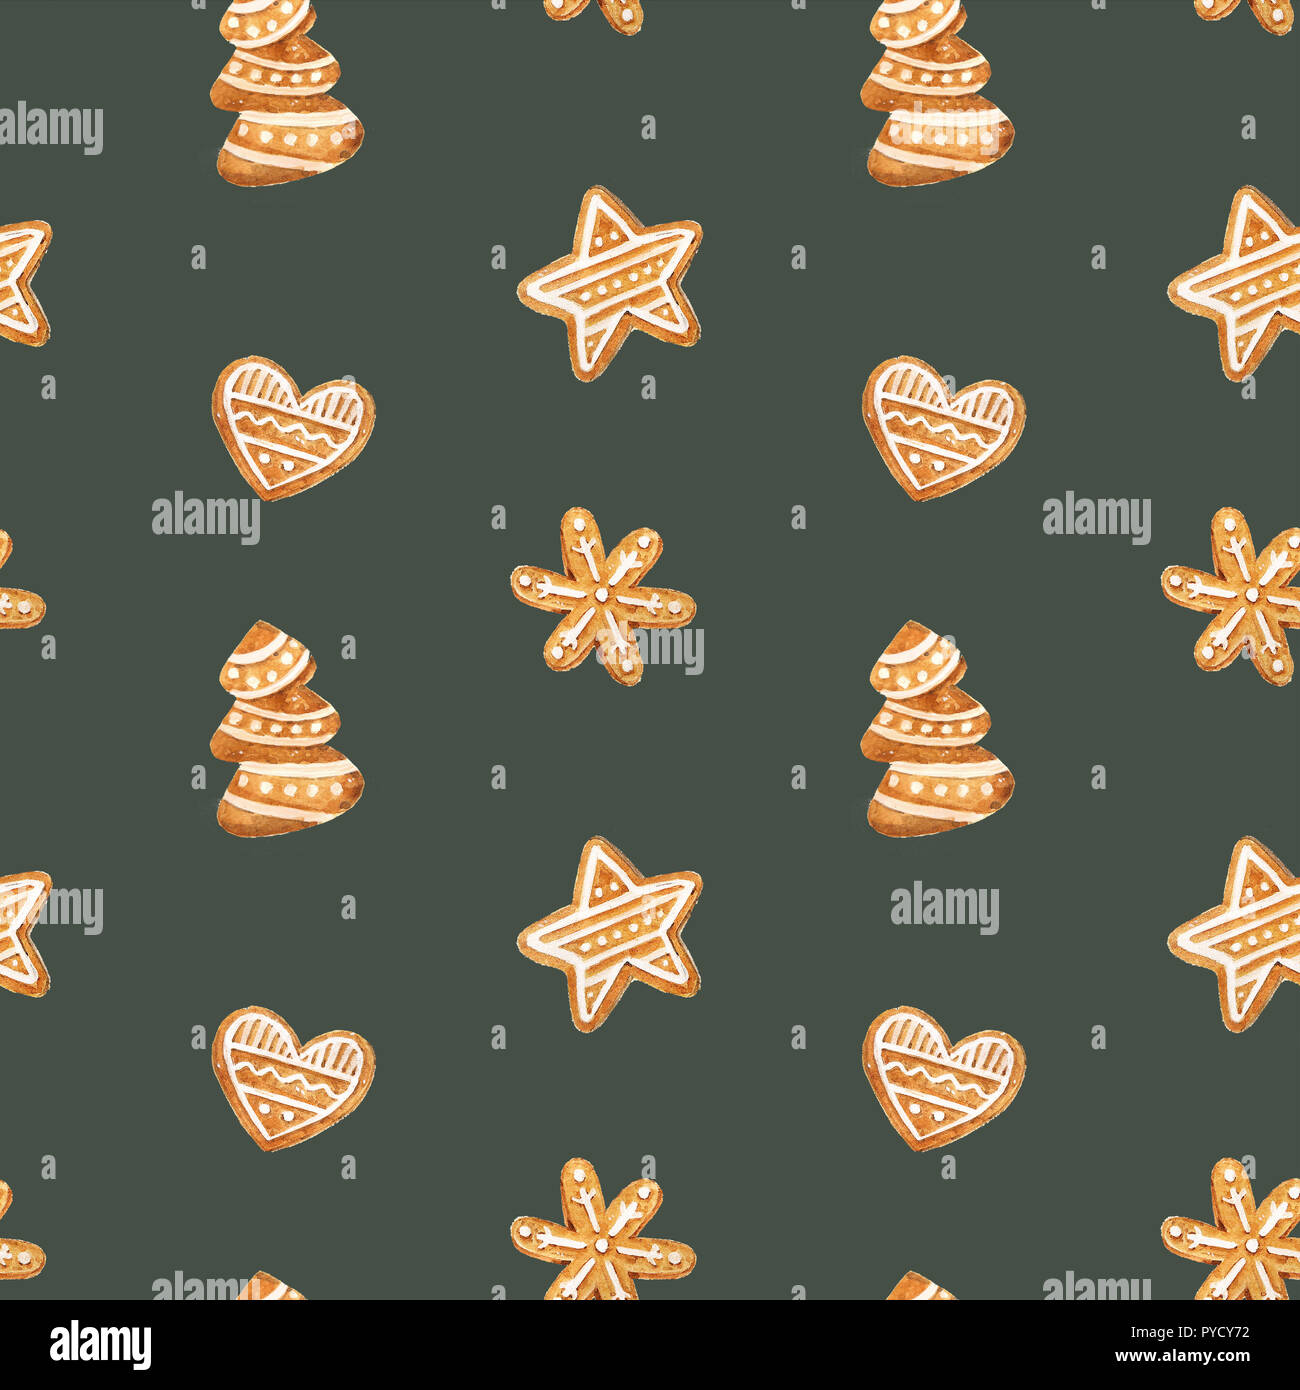 christmas gingerbread seamless pattern ginger cookies on blue background watercolor illustration cute xmas background for wallpaper gift paper PYCY72